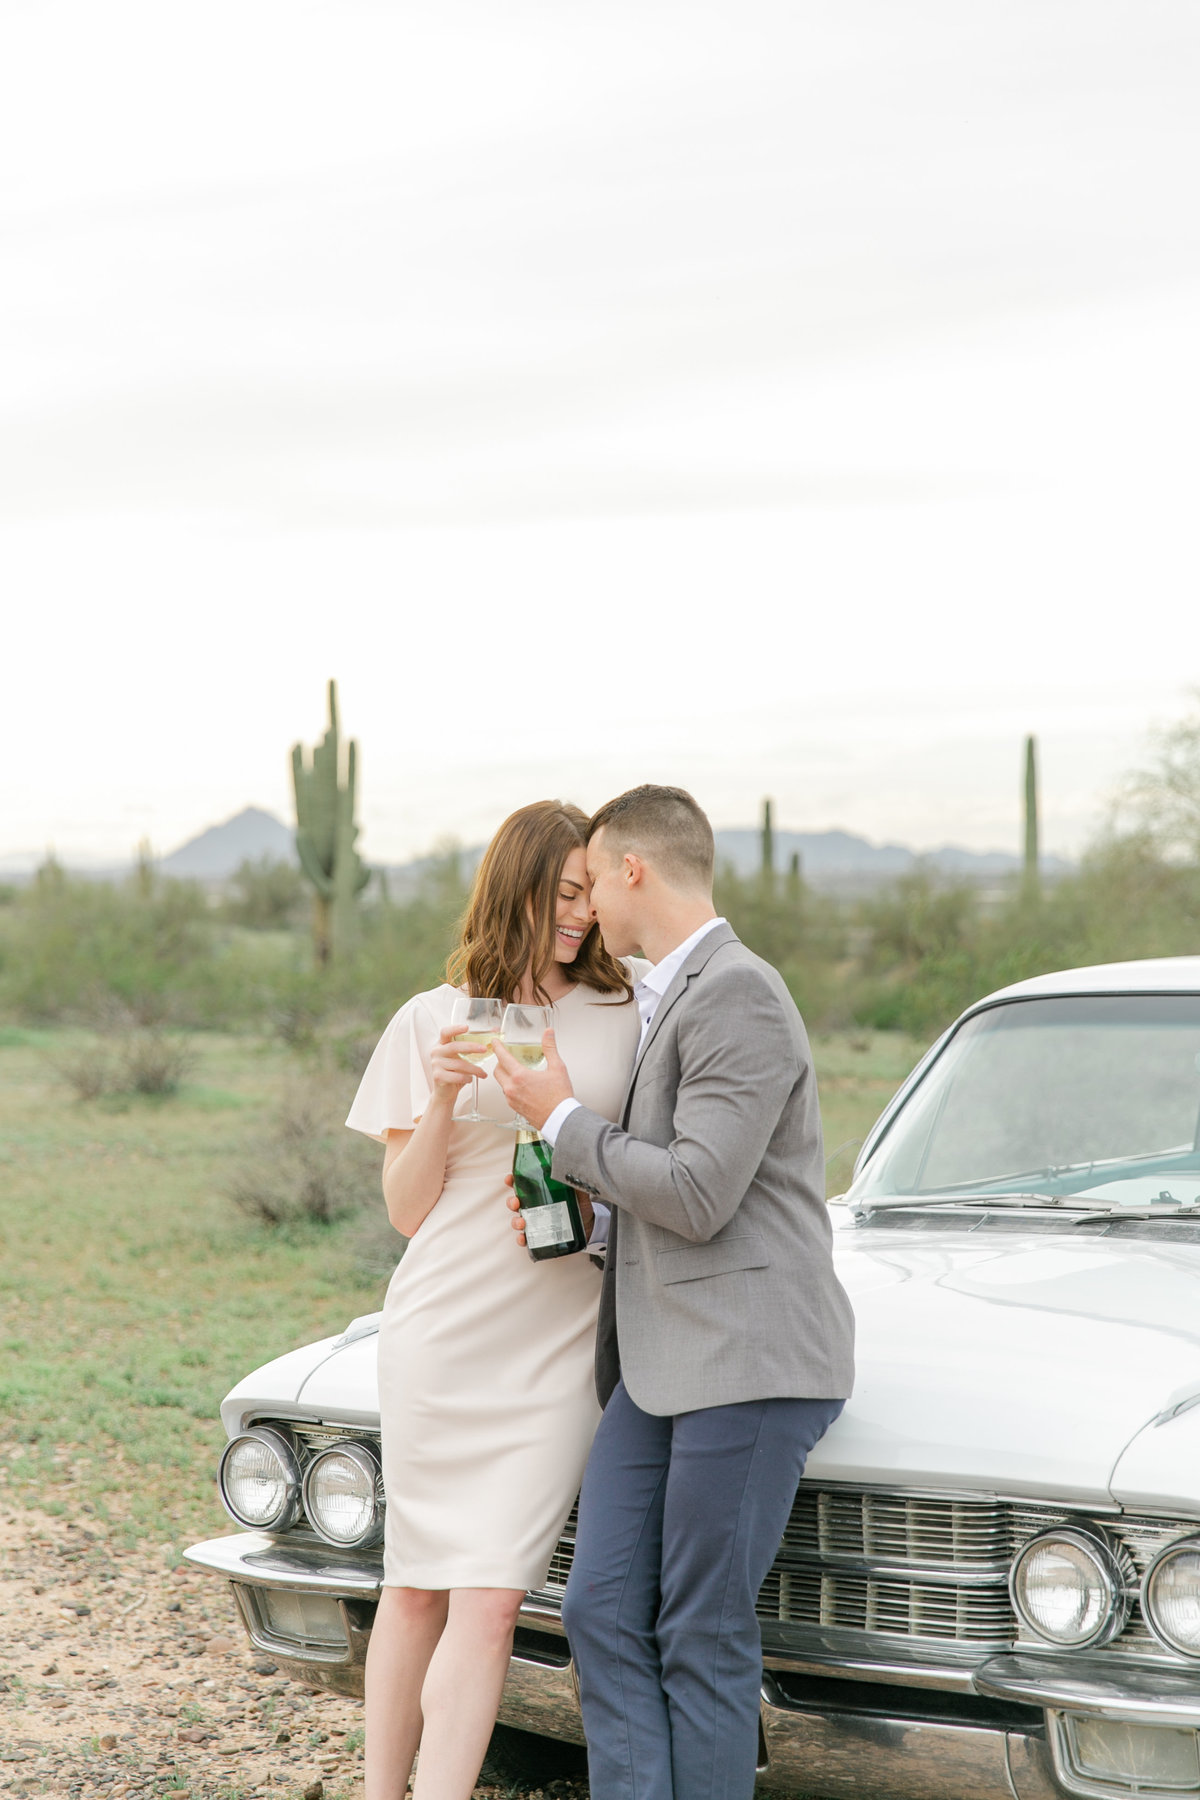 Karlie Colleen Photography - Arizona Engagement Photos- Chacey & Stefan-63